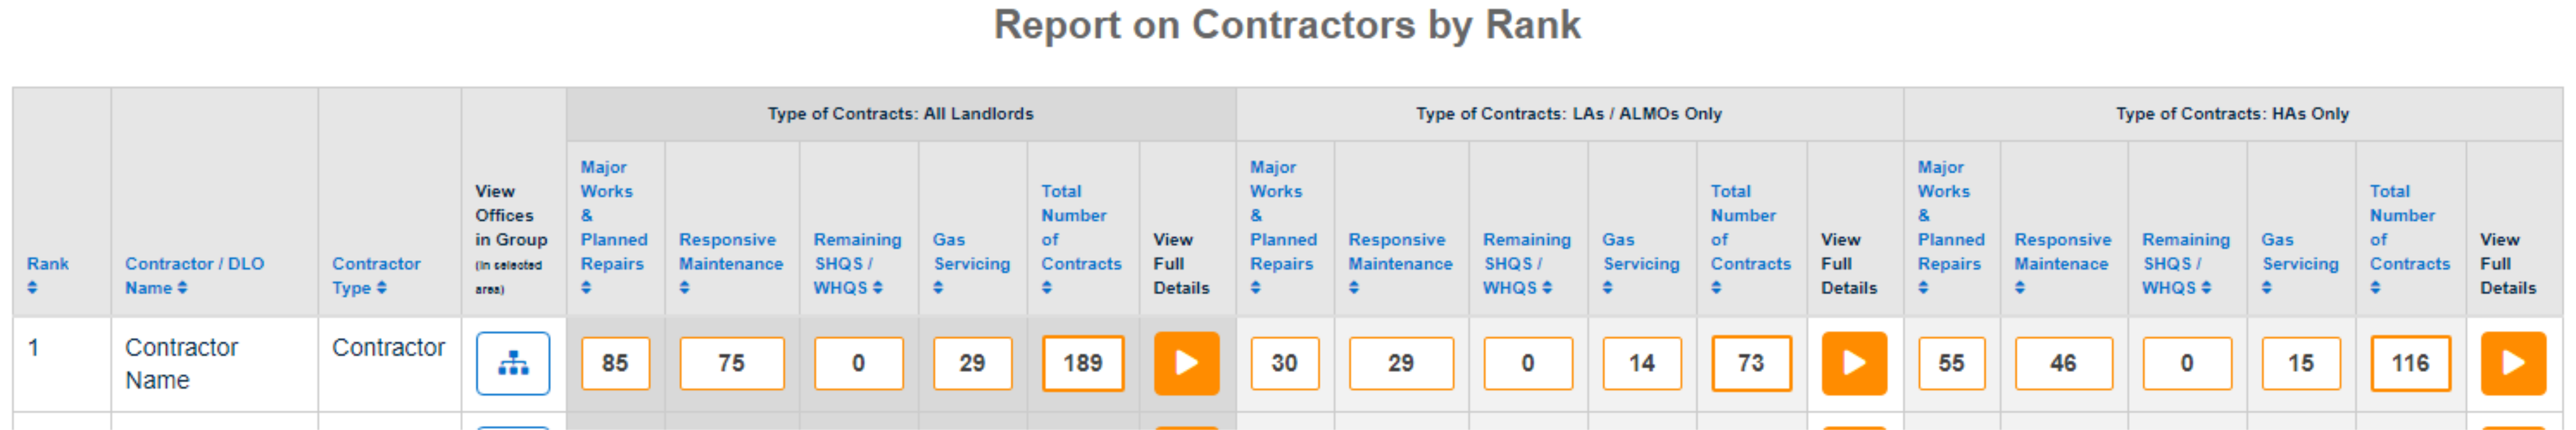 Contractors - DLOs - Reports on Contract Dates & Extensions